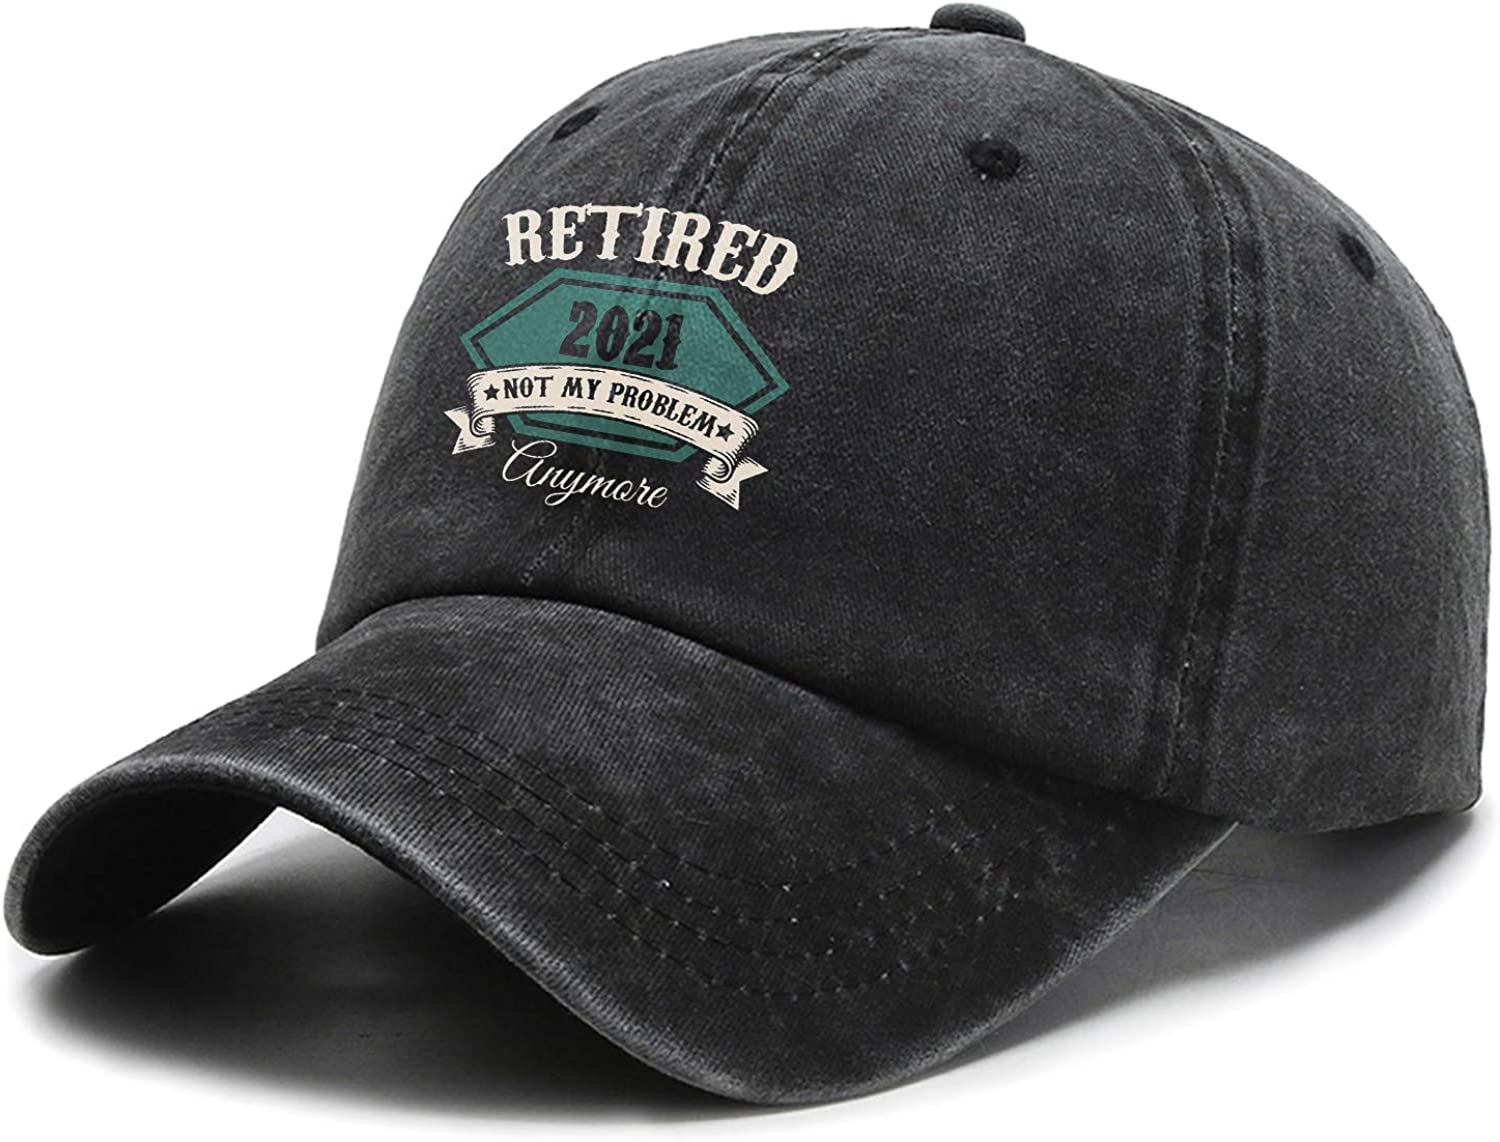 Retired 2021 Not My Problem Anymore Hat,Adjustable Baseball Cap Unisex Washable Cotton Trucker Cap Dad Hat …